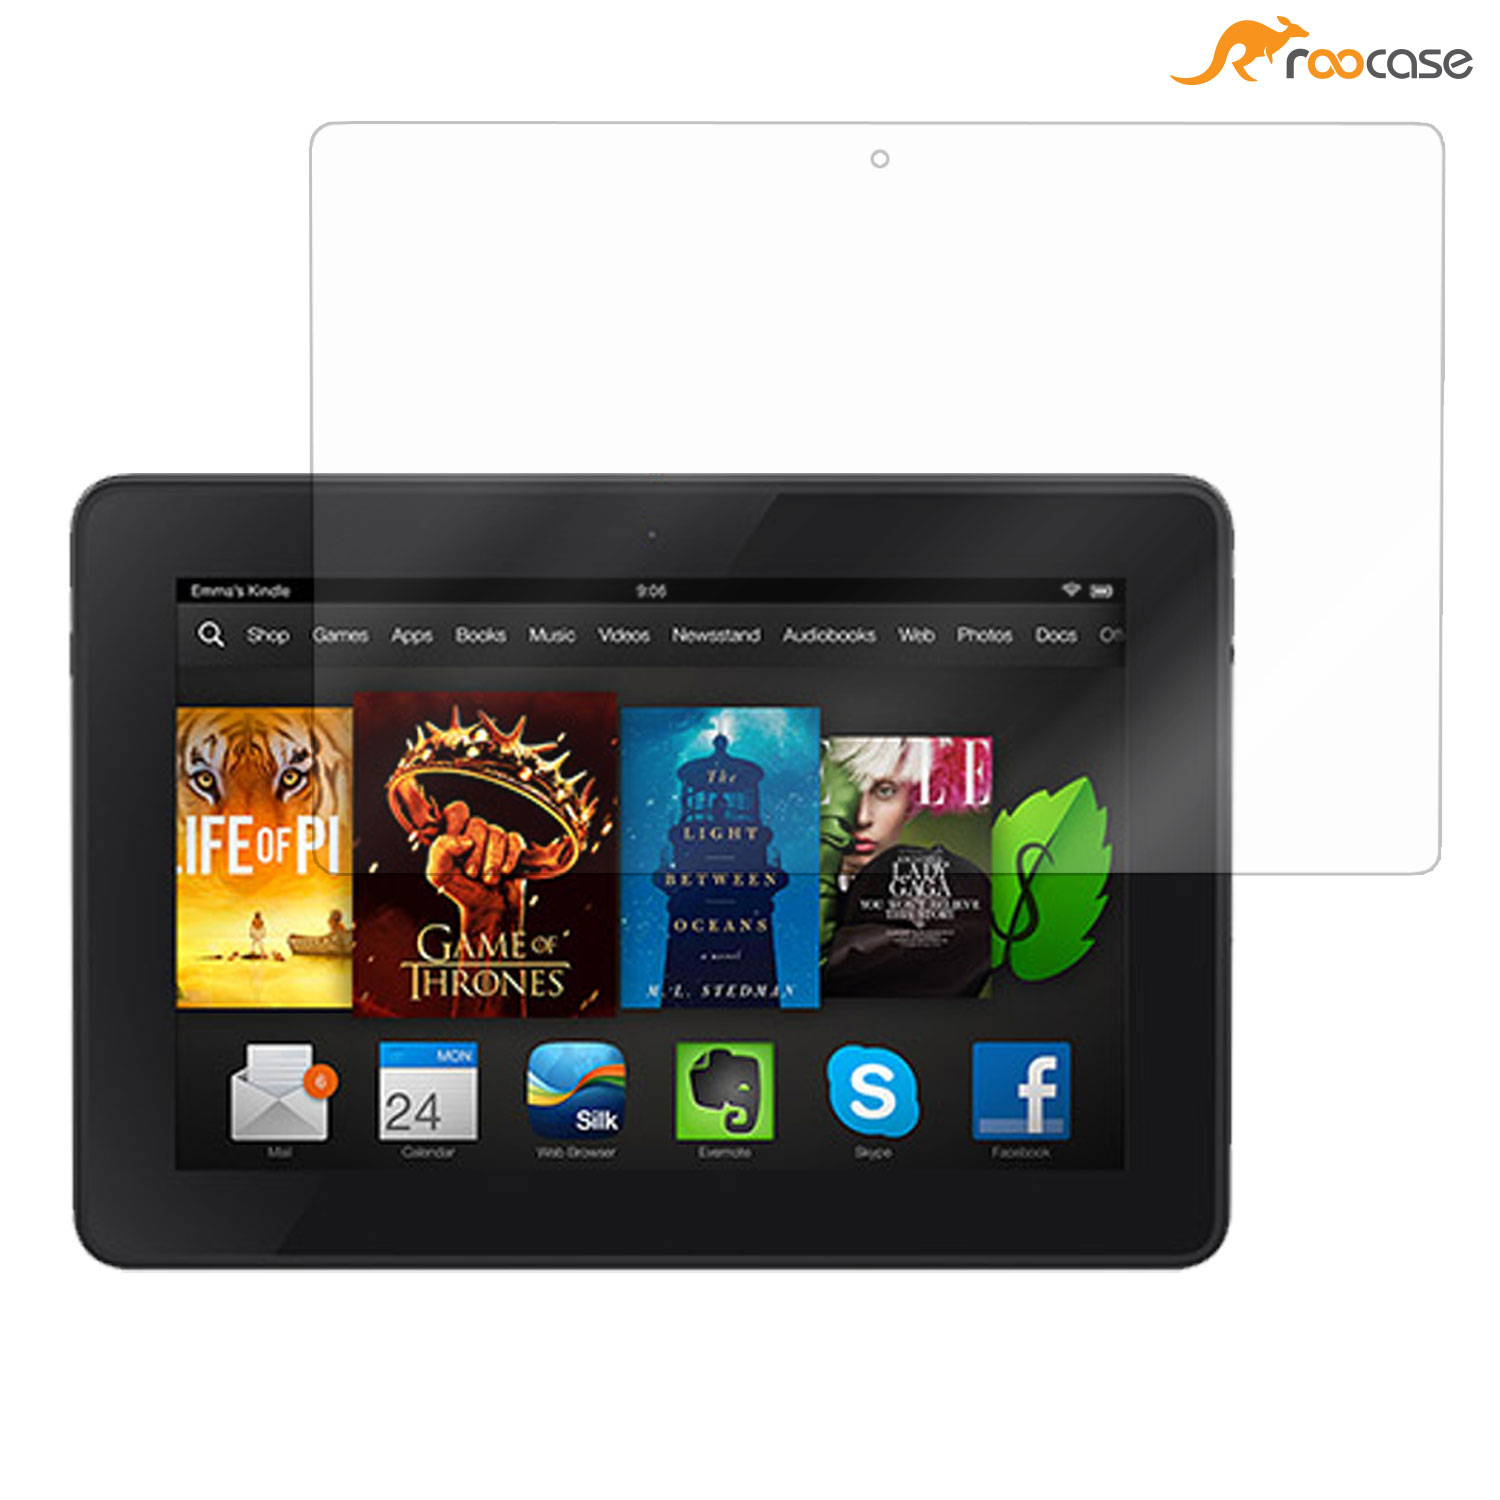 roocase Ultra Premium HD Screen Protector for Kindle Fire HD 7 2014